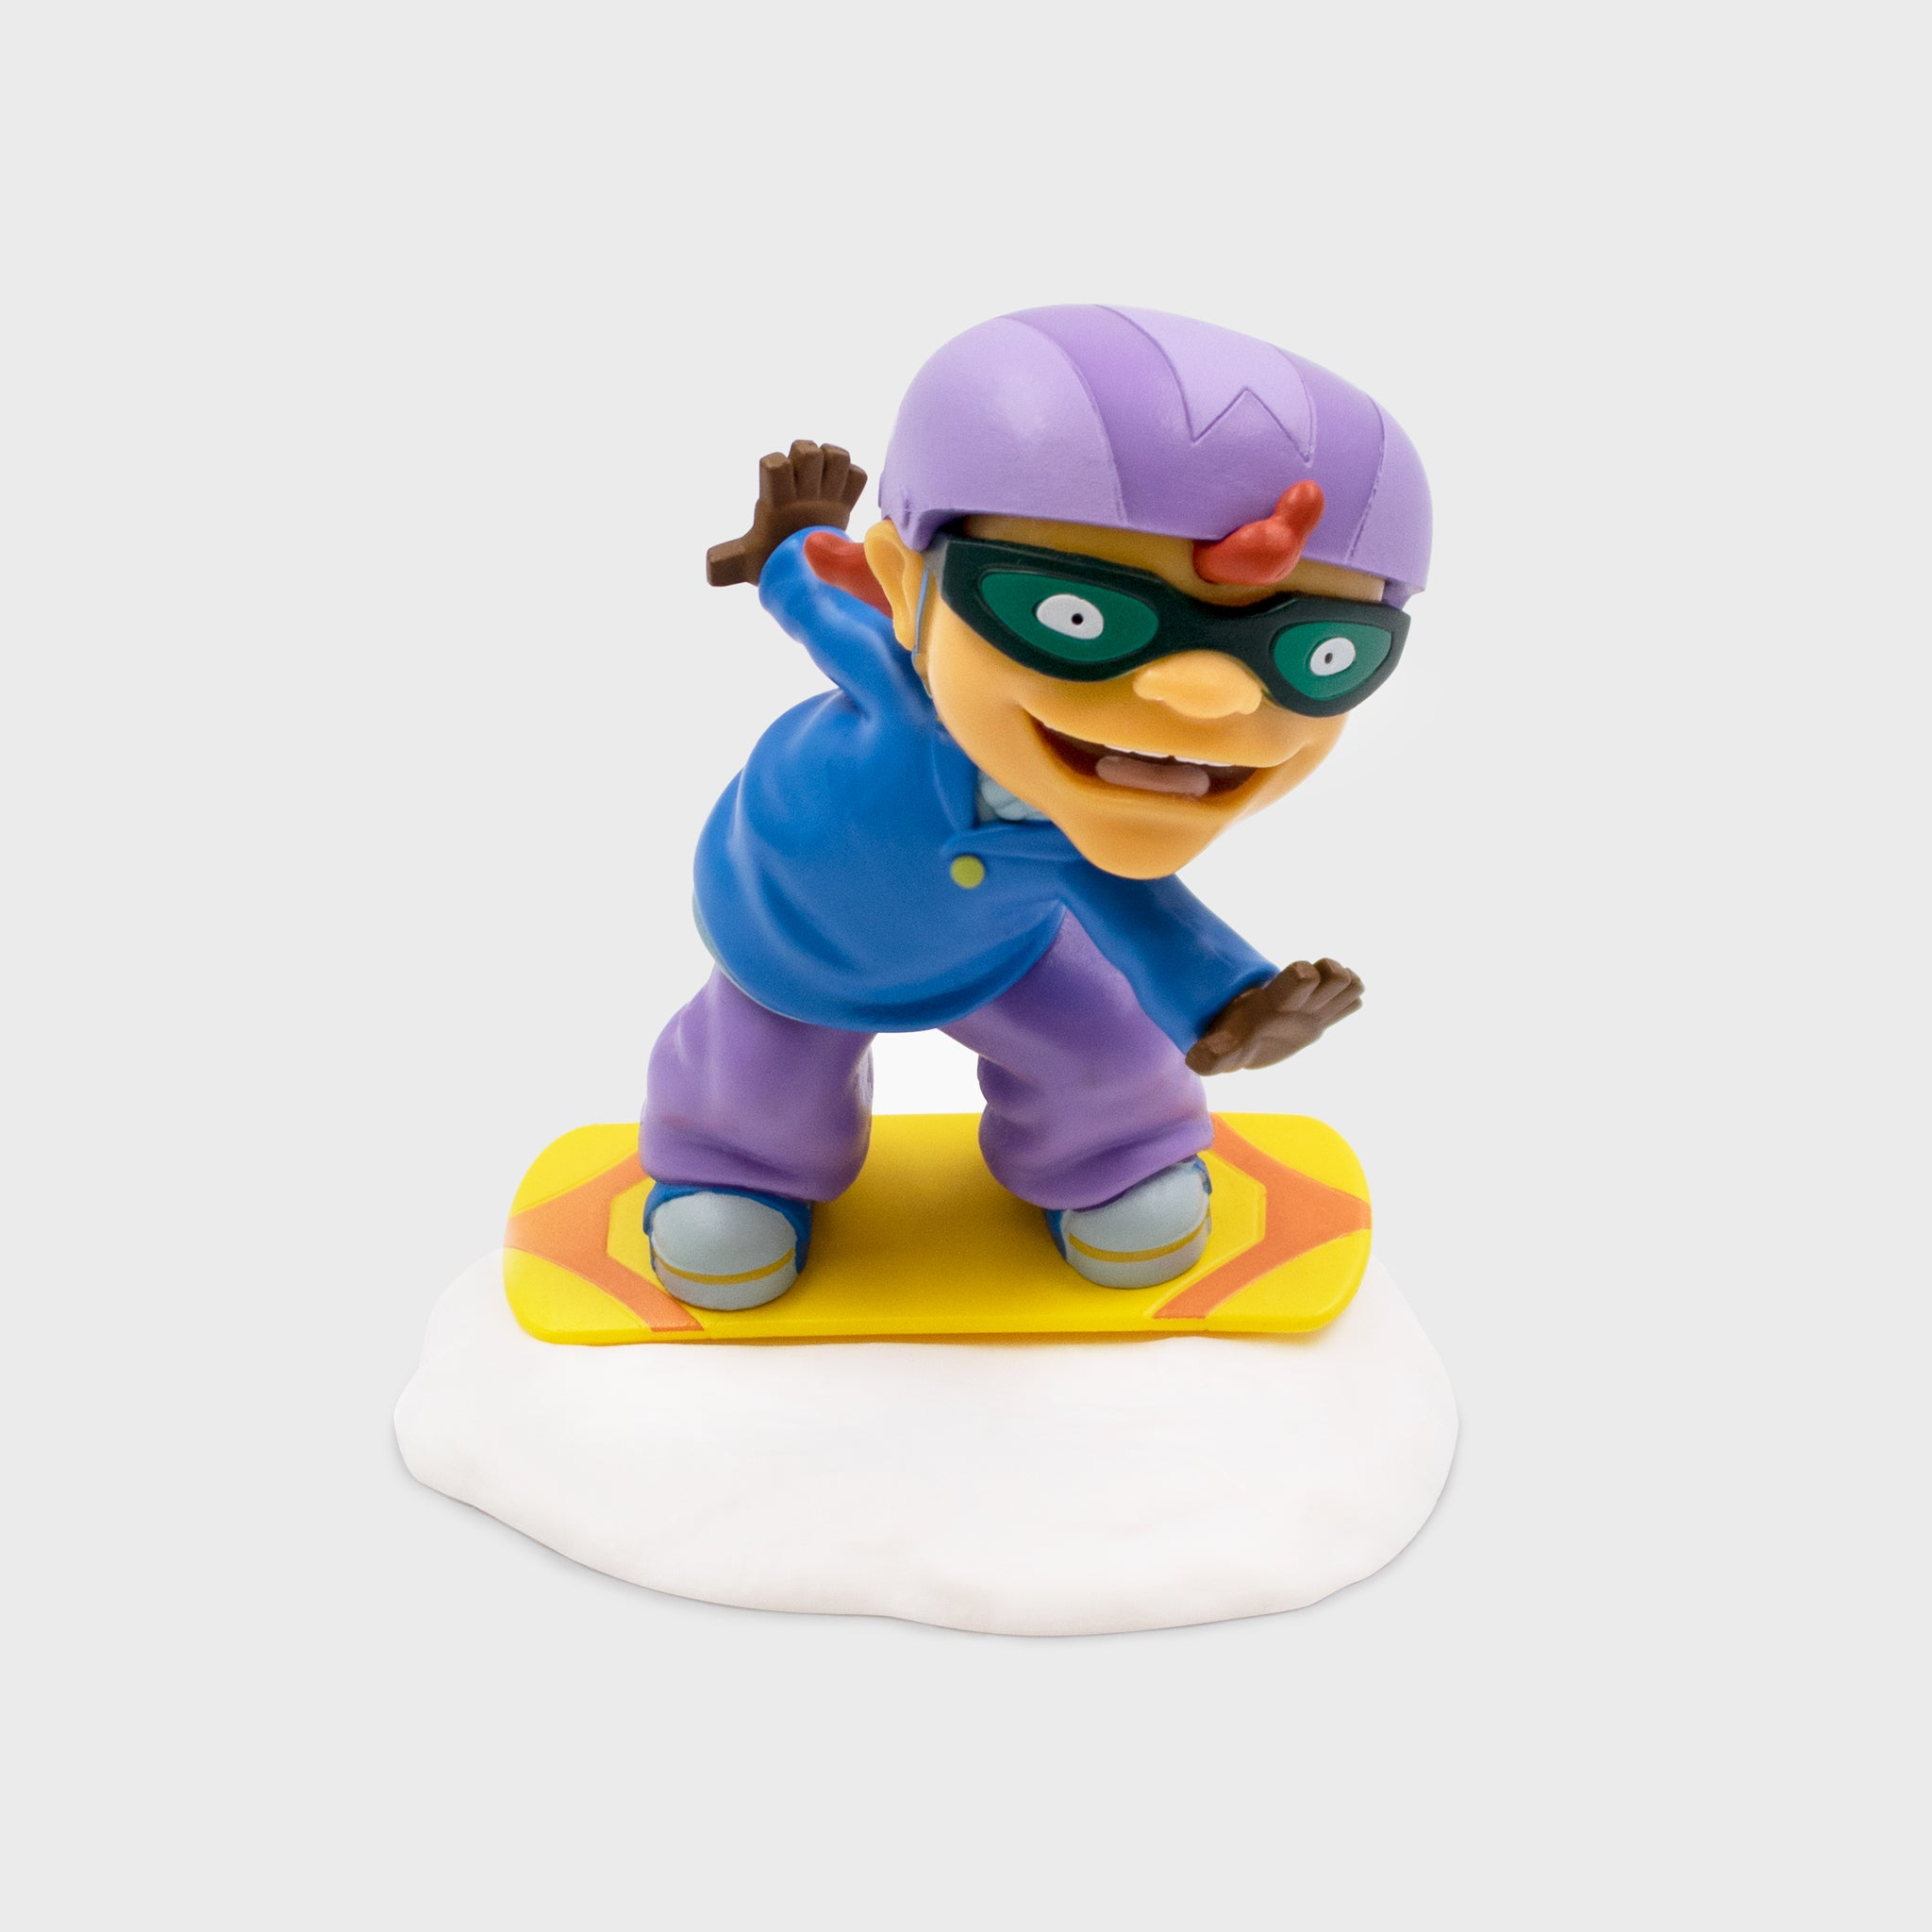 the nick box nickelodeon 90s kids 90s cartoons nostalgia throwback nostalgic classic subscription quarterly exclusive limited edition collectible rocket power vinyl figure culturefly